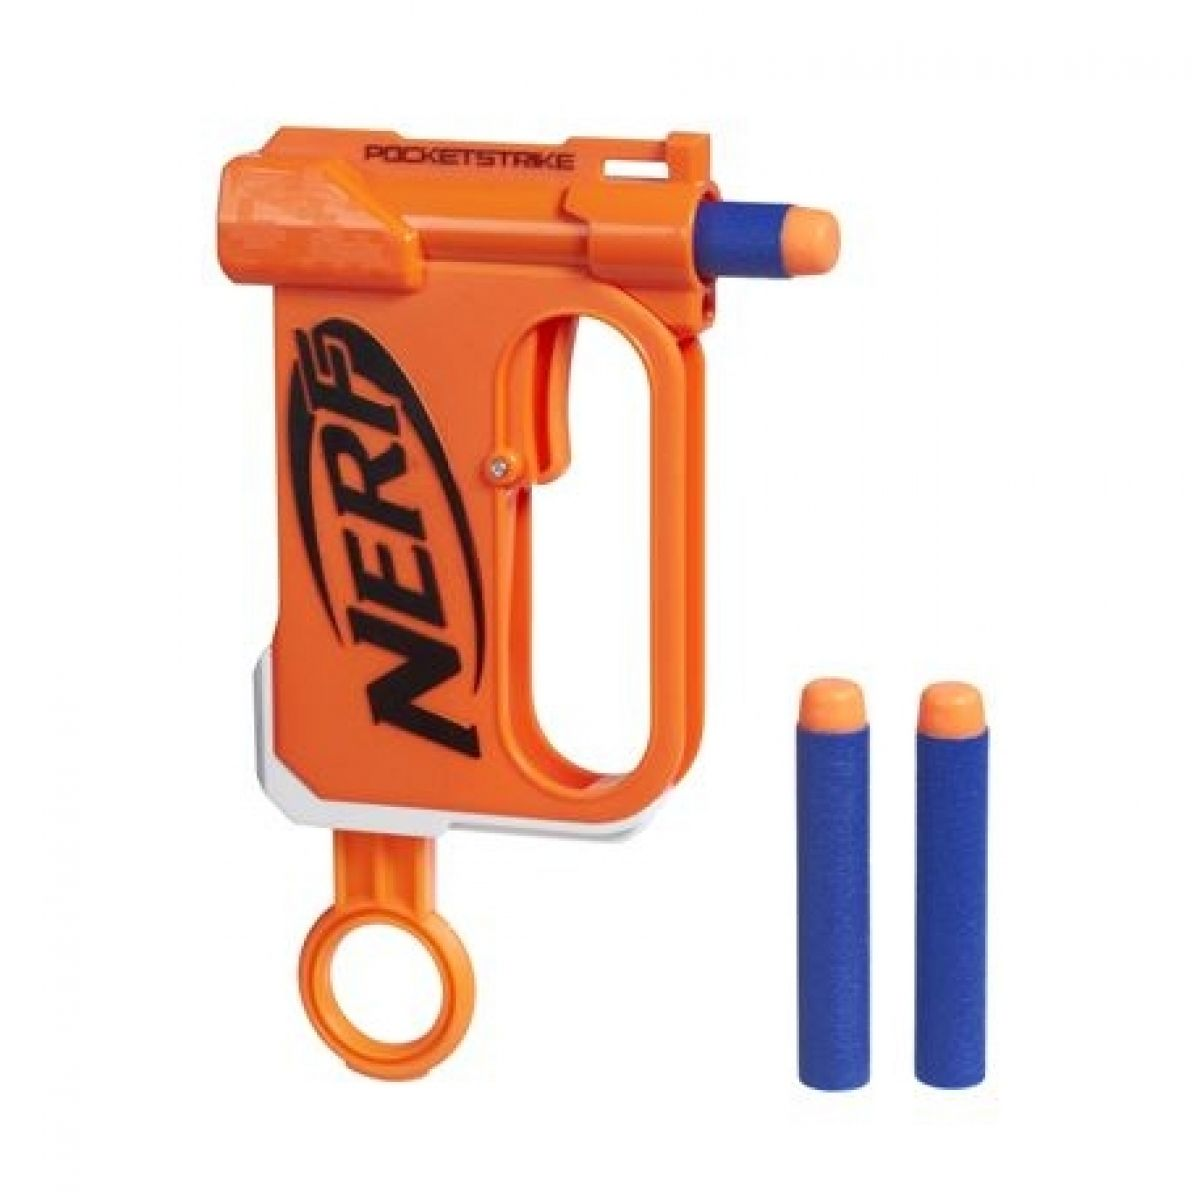 Nerf N-Strike Elite Poketstrike